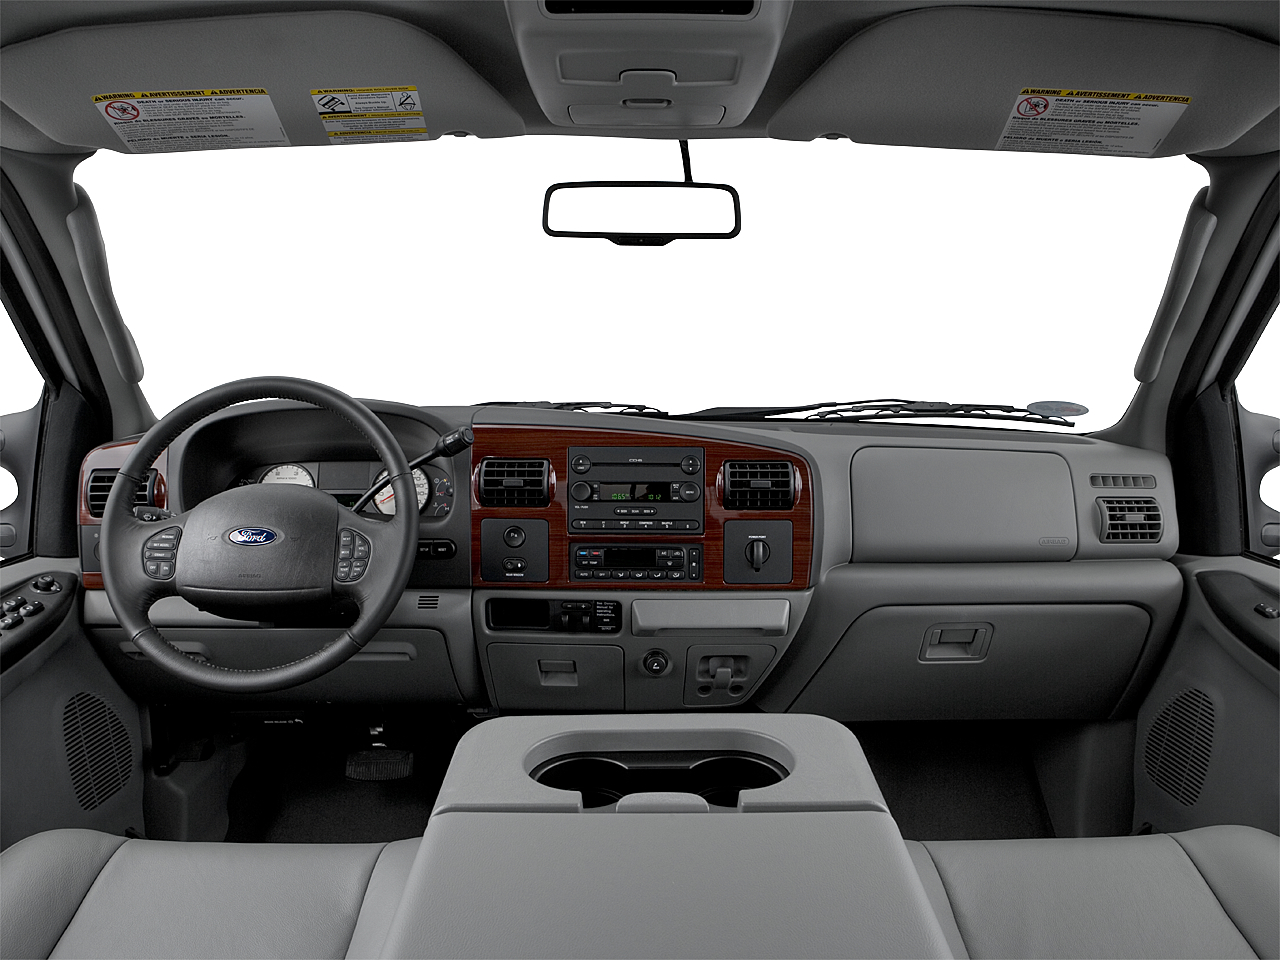 2006 Ford F-350 SD DRW Lariat, centered wide dash shot